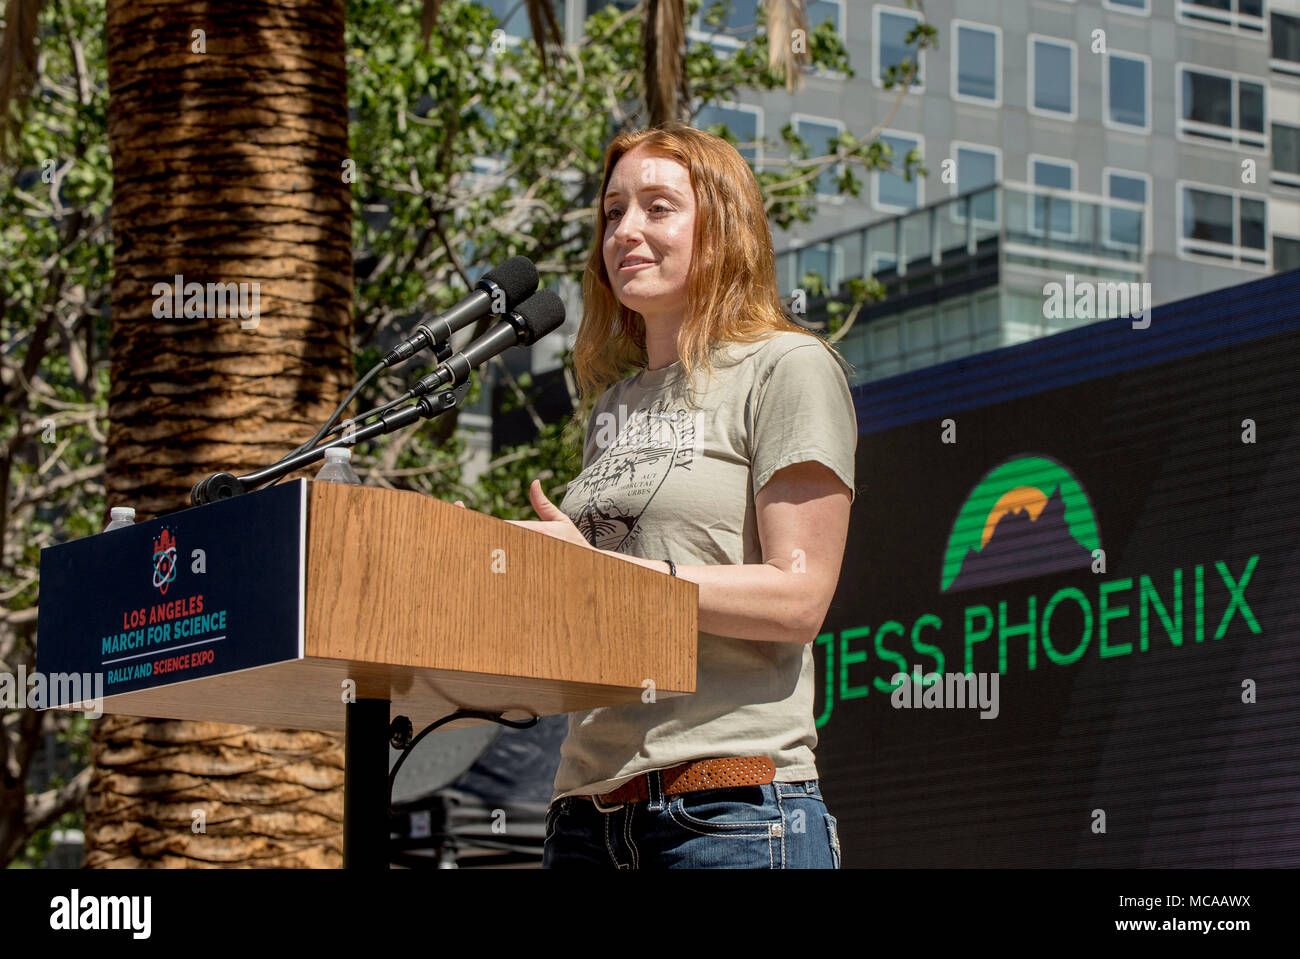 Los Angeles, California, USA. 14th Apr, 2018. Volcanologist JESS PHOENIX, a candidate for Congress in California's 25th District, speaks at the 2018 March for Science Los Angeles Rally and Expo in Pershing Square. Credit: Brian Cahn/ZUMA Wire/Alamy Live News - Stock Image